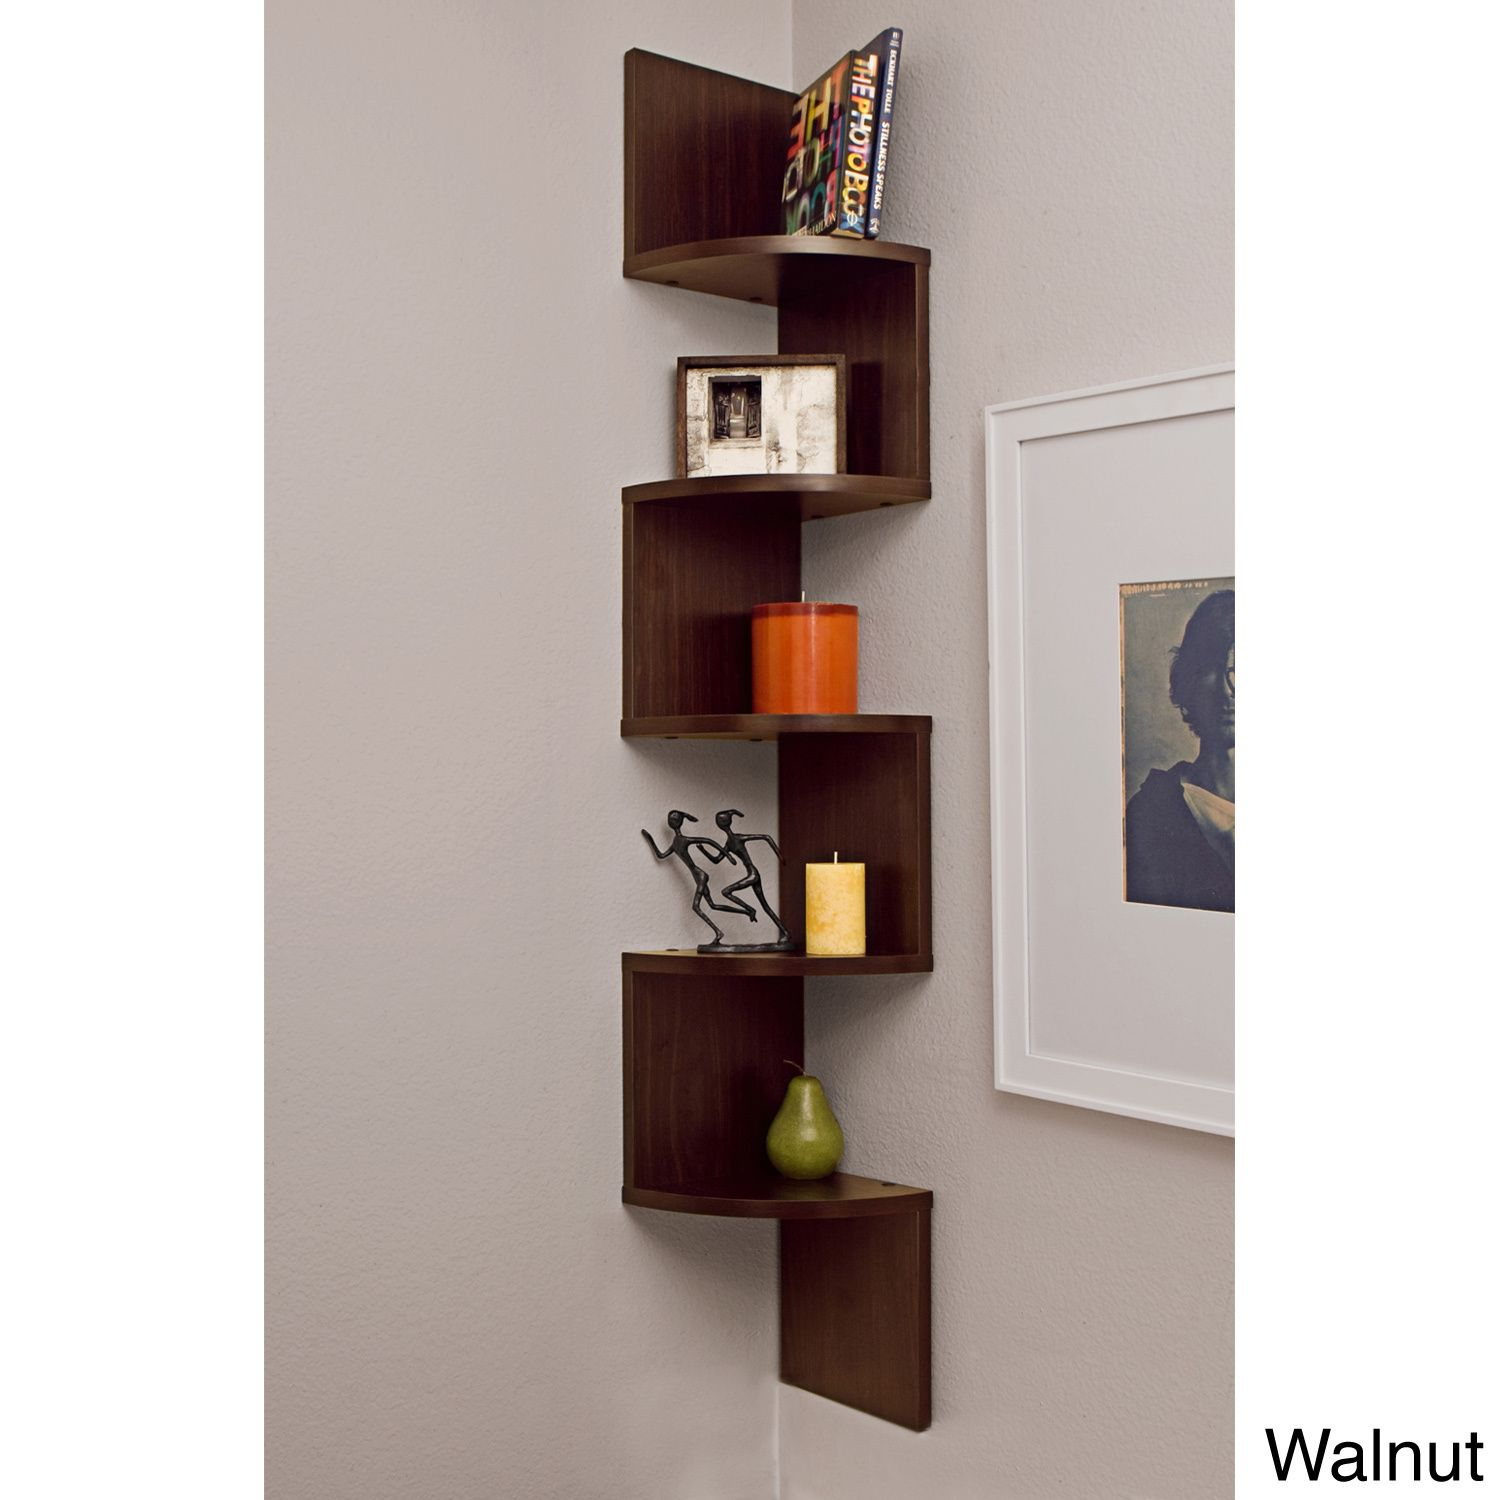 This unique corner wall-mount shelf has a fun and artsy design that will add